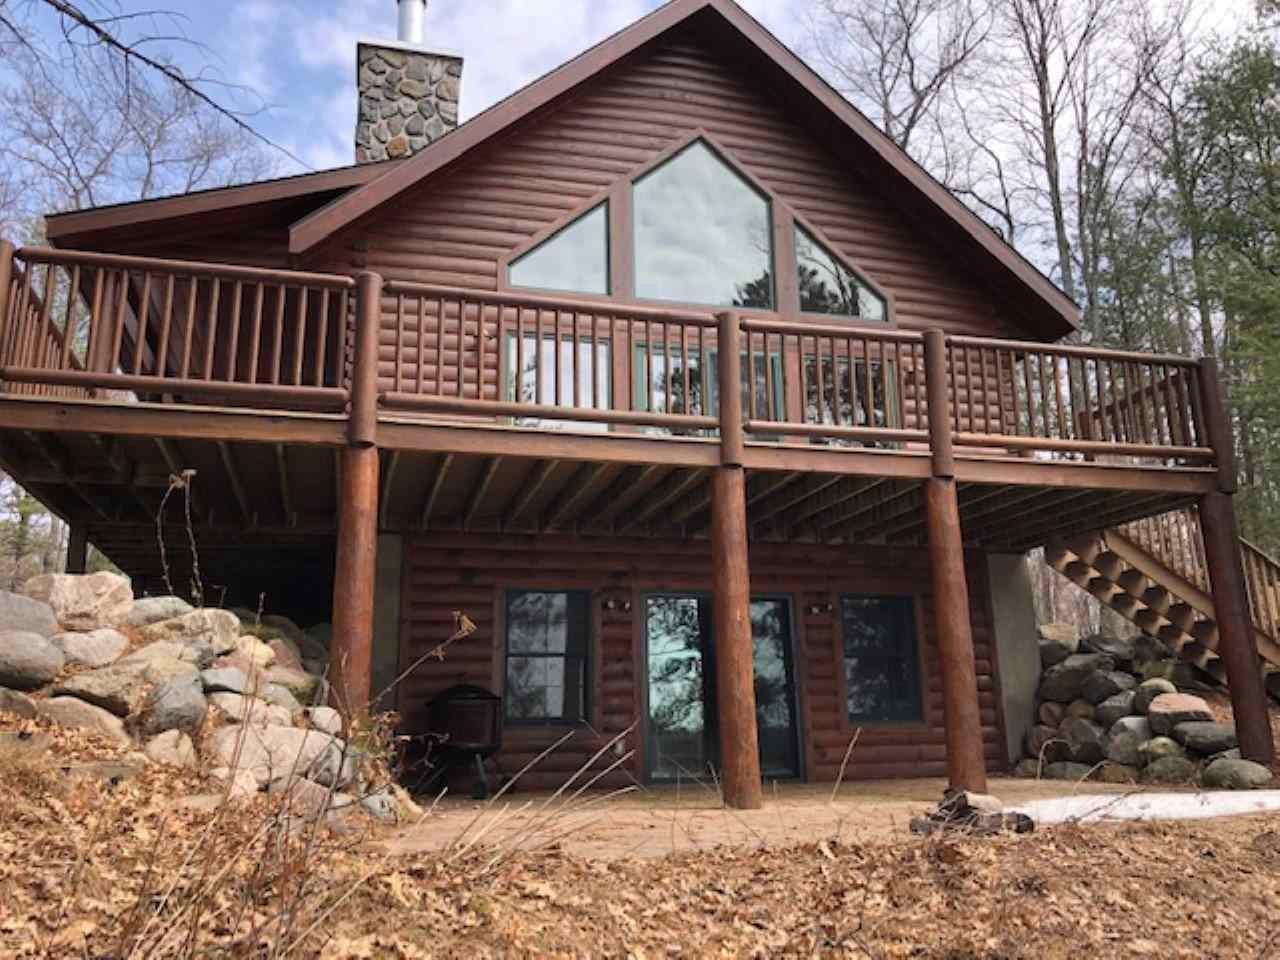 First time offered!  Gorgeous sunset views on beautiful Horsehead Lake!  A combination of rustic style & modern luxury in this Full Log Northwoods home.  Meticulously maintained Chalet style property with a modern open floor plan.  Relax in the living room with vaulted ceilings & naturally checking log beams, next to the hand crafted stone wood burning fireplace.  Open kitchen with built-in Jenn Air range and large breakfast island.  Handcrafted wood cabinetry, main floor laundry, Kohler steam shower plus a separate soaking tub!  Loft area is perfect for a den/reading area overlooking living areas.  Fully finished walk-out lower level with a family room area and custom built wet bar.  Plus a full bath and bonus room for overflow company.  High efficiency boiler for in-floor heat throughout all 3 levels of the home keeps it warm and cozy, plus it features central air for the warm summer nights!  Step outside to a large open deck overlooking the water and watch eagles fly right over your head!  The deck also connects to a 45x8 covered porch.,Both porch and deck have maintenance-free decking material.  Beautiful wooded expansive lalndscaped yard with a high quality children's play set.  Two car detached garage with large loft area for additional storage.  Blacktop driveway with extra parking areas. Just minutes from downtown Lake Tomahawk!  Come and see for yourself, just how much this stunning property will exceed your expectations!  Directions:  Hwy 51 North to Right on CTH D (by Hazelhurst Pub & Grub) East on CTH D to Hwy 47, South 1 mile to Right on Crow Road, property is at the end of road.